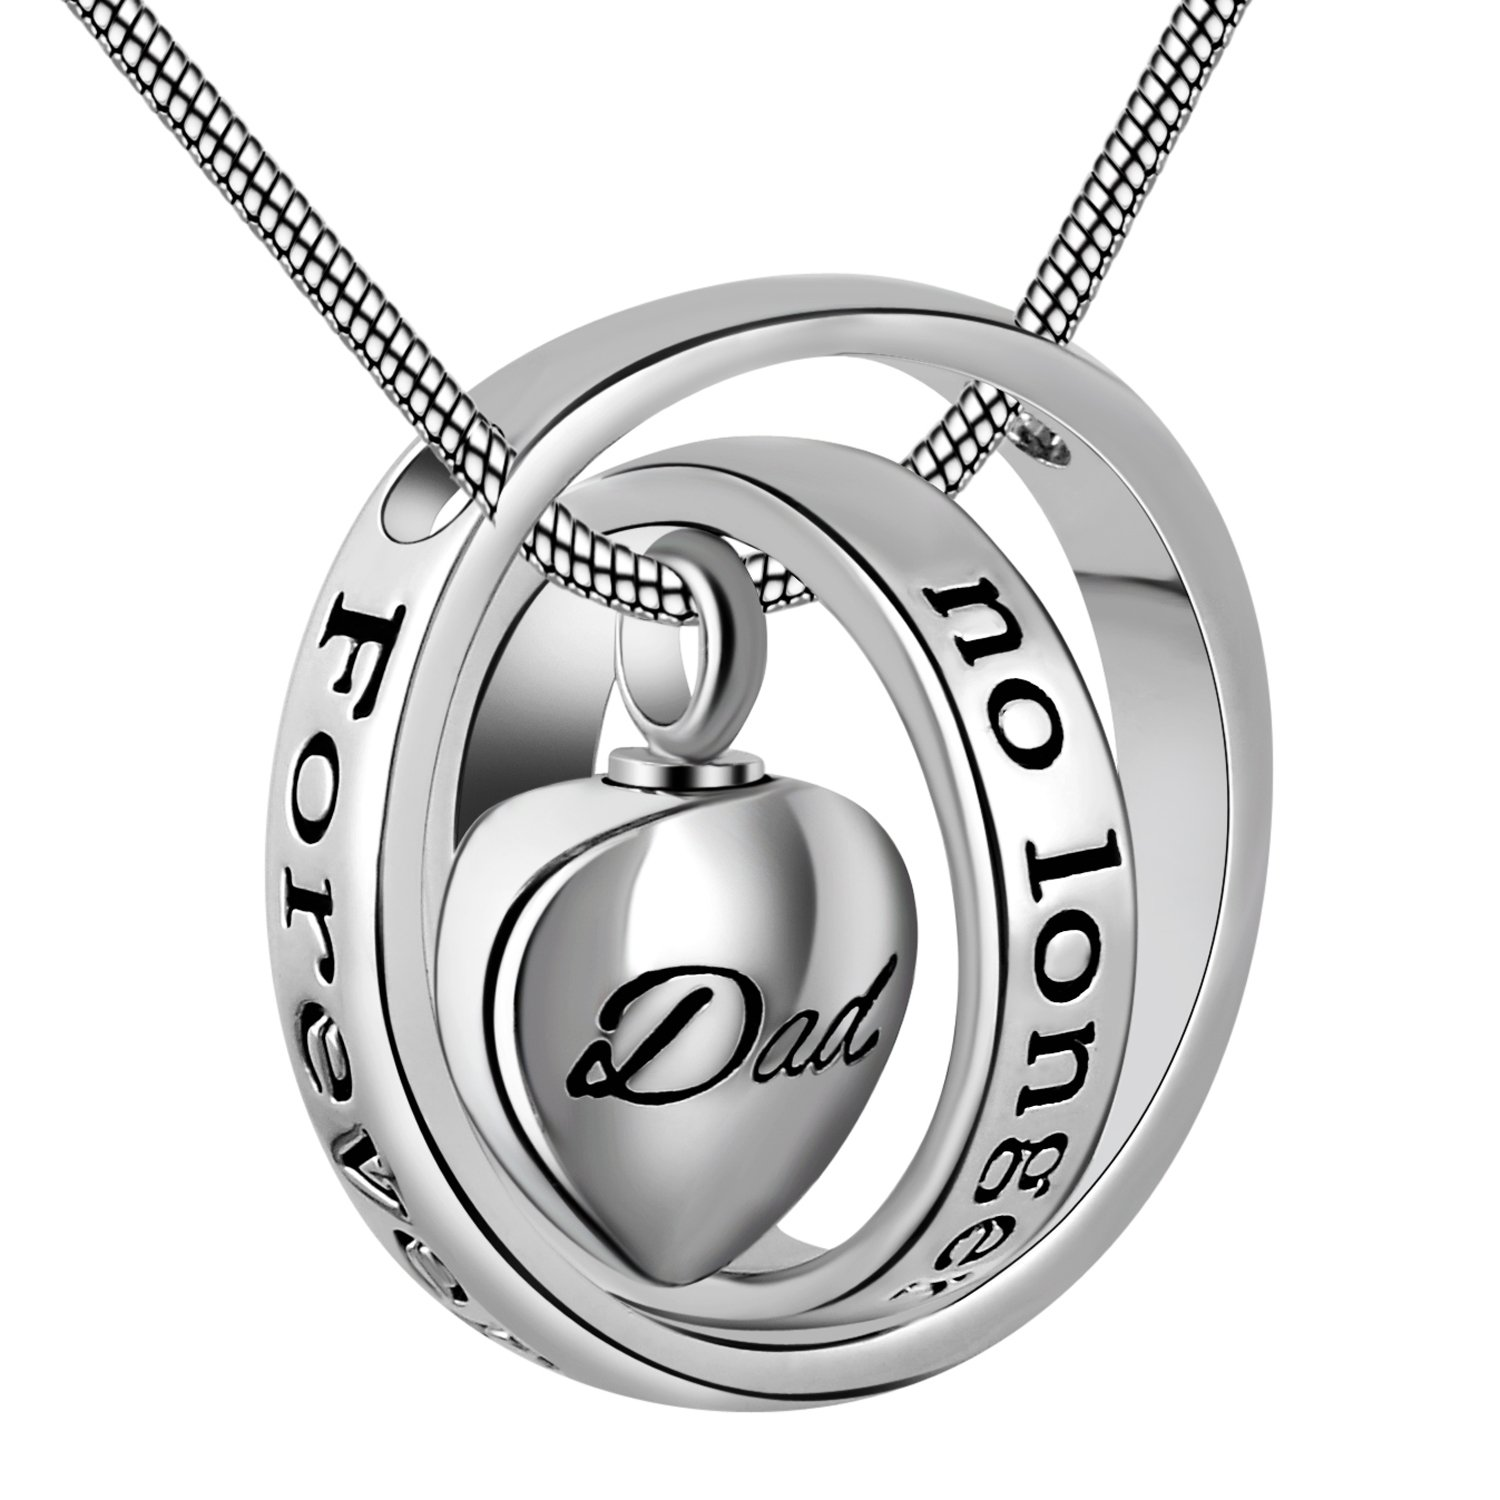 Eternally Loved No longer by my side,forever in my heart carved locket cremation Urn necklace for mom & dad (Dad)